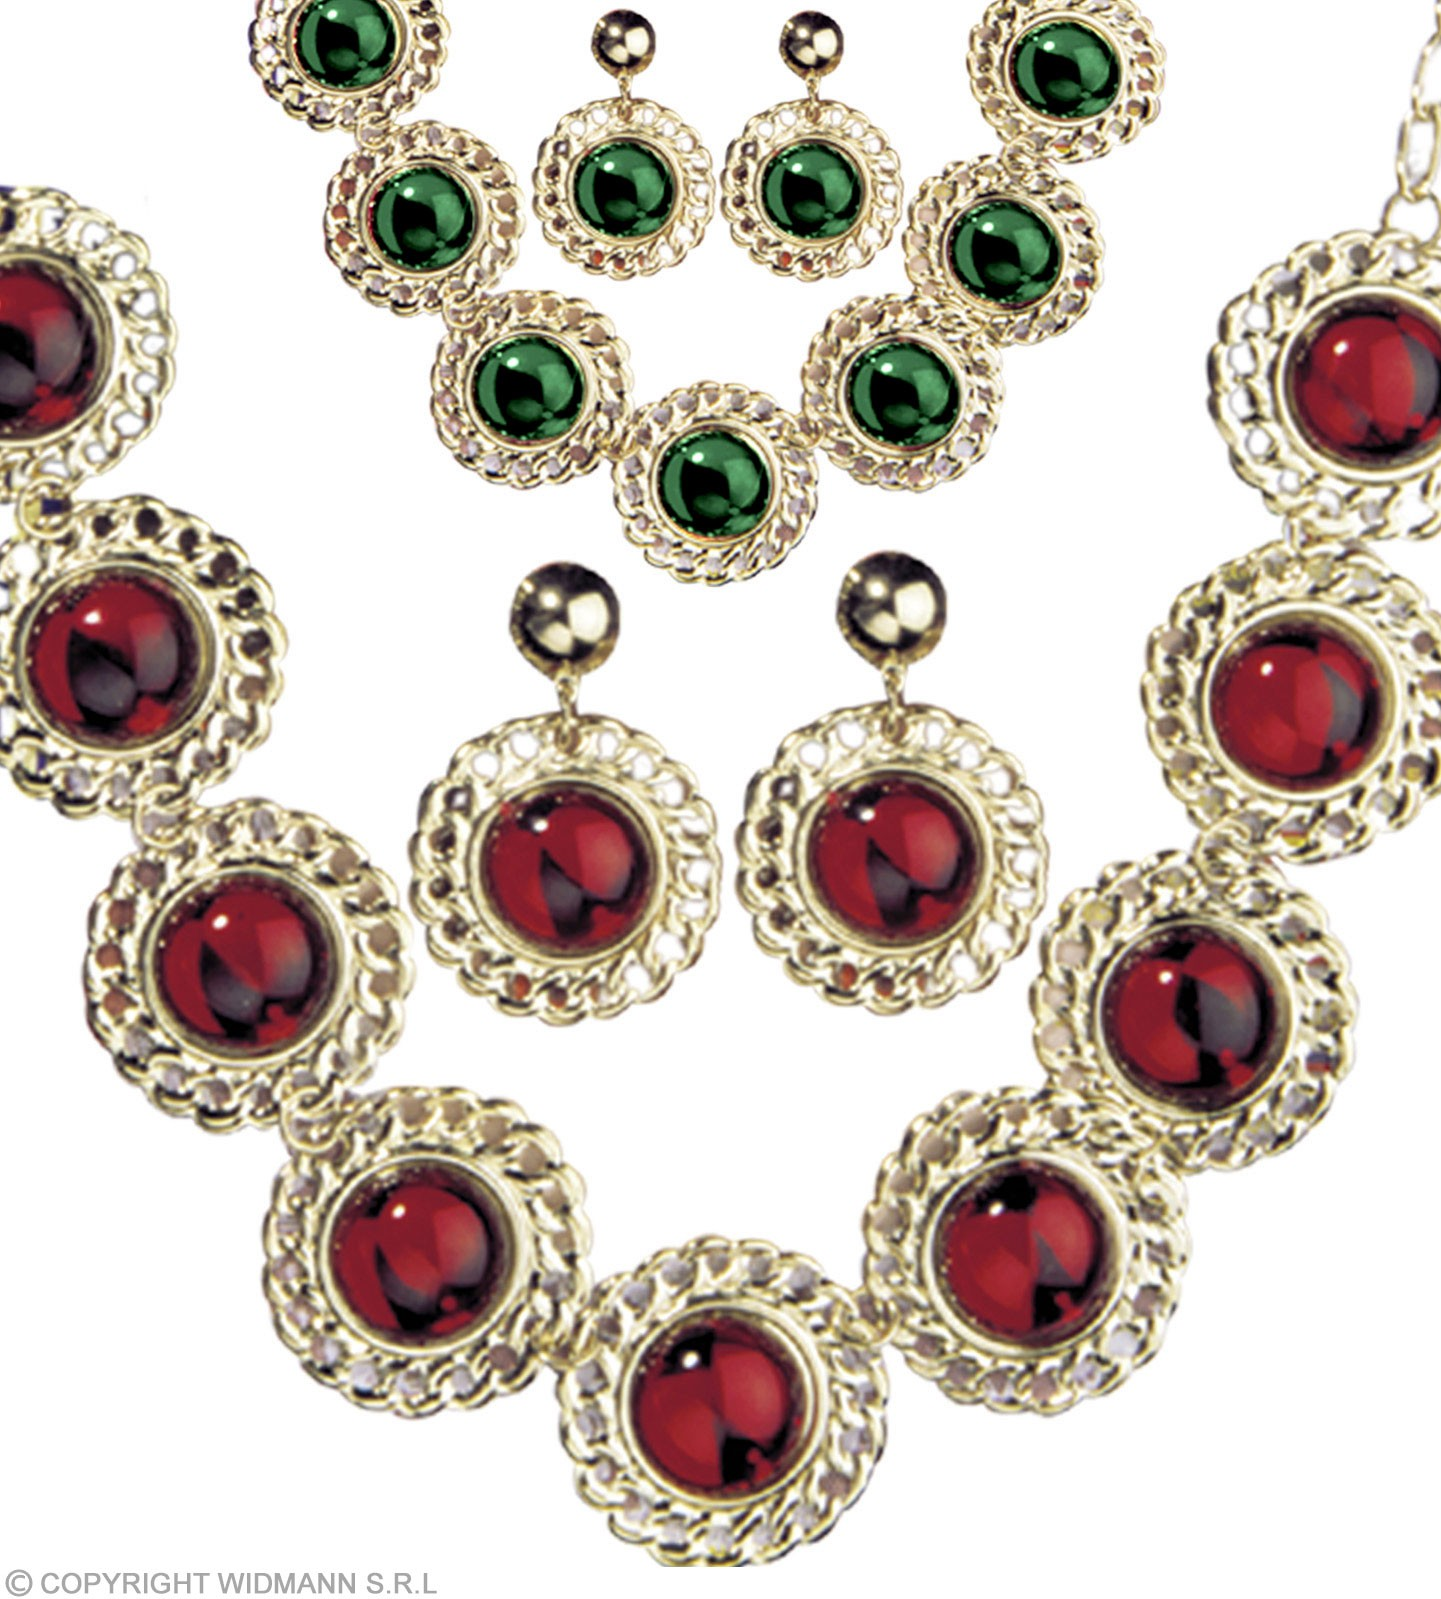 Medieval Queen Set Necklace/Earrings - Fancy Dress (Royalty)